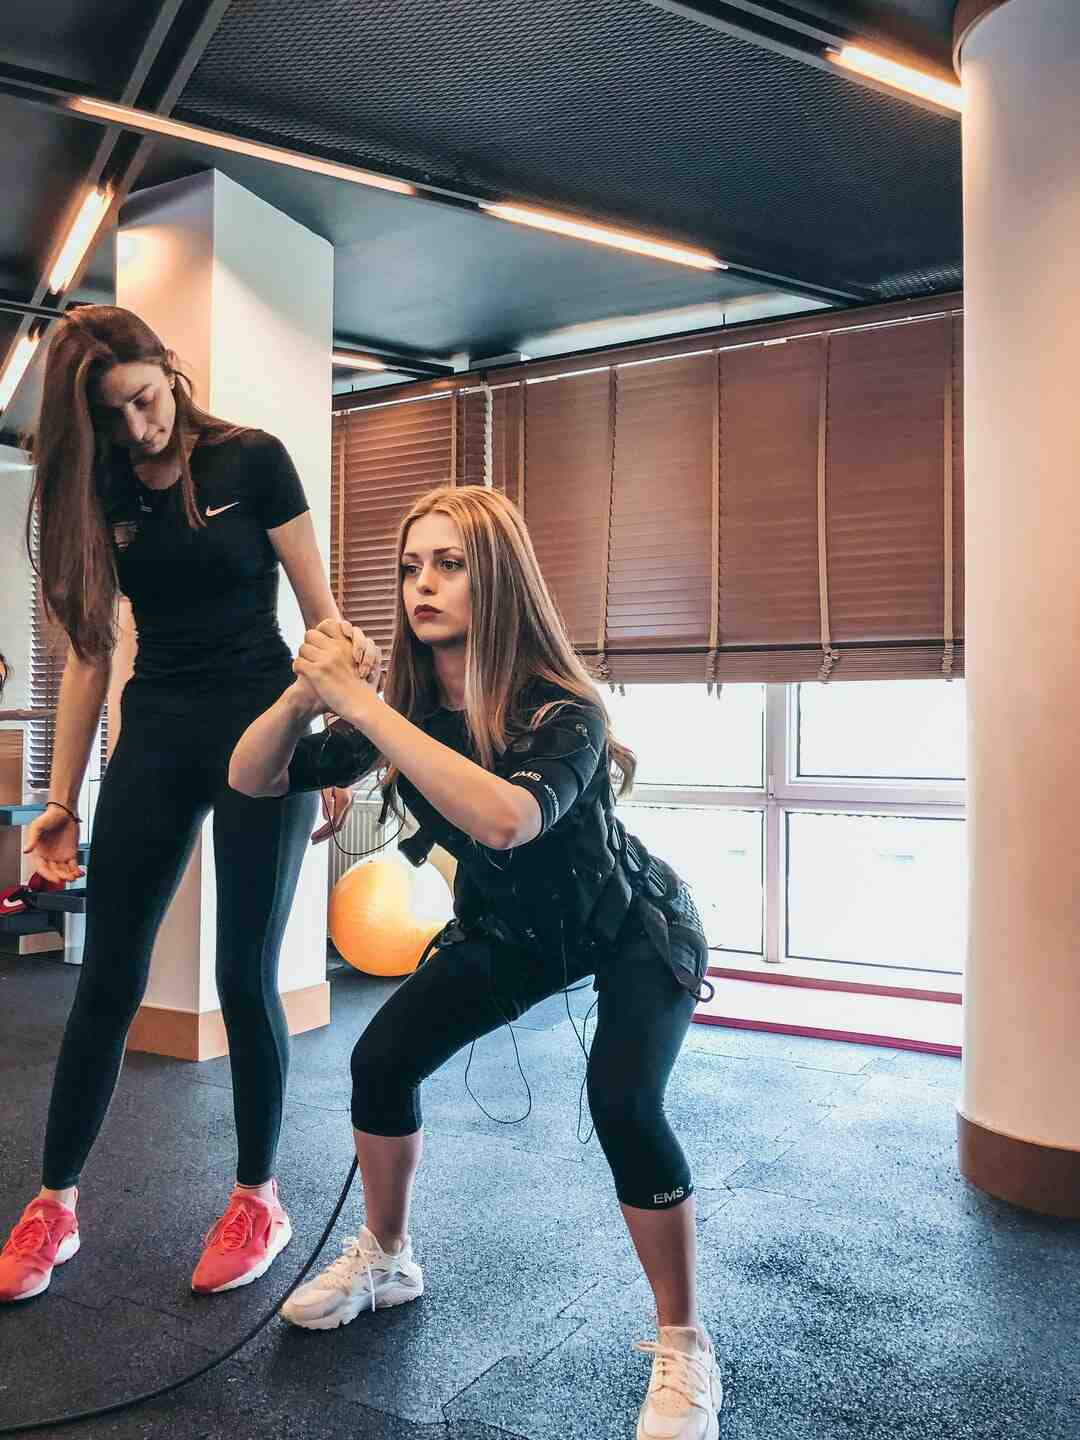 How to Be a Personal Trainer